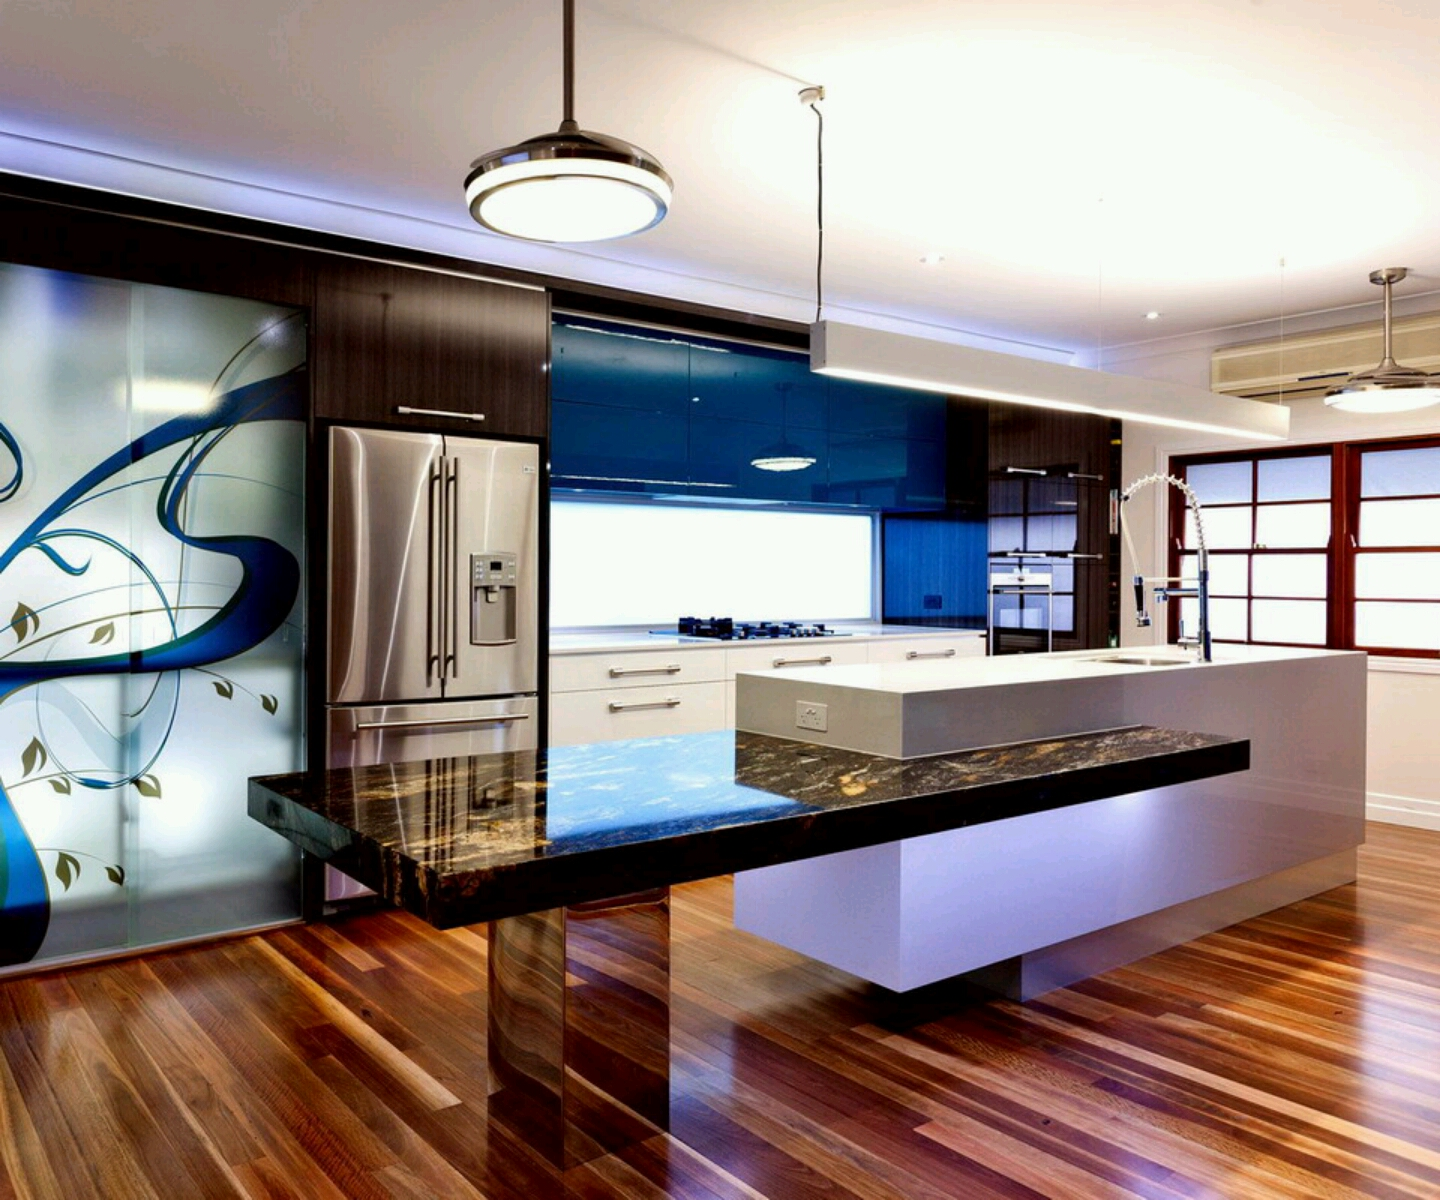 New home designs latest ultra modern kitchen designs ideas for New home kitchen design ideas